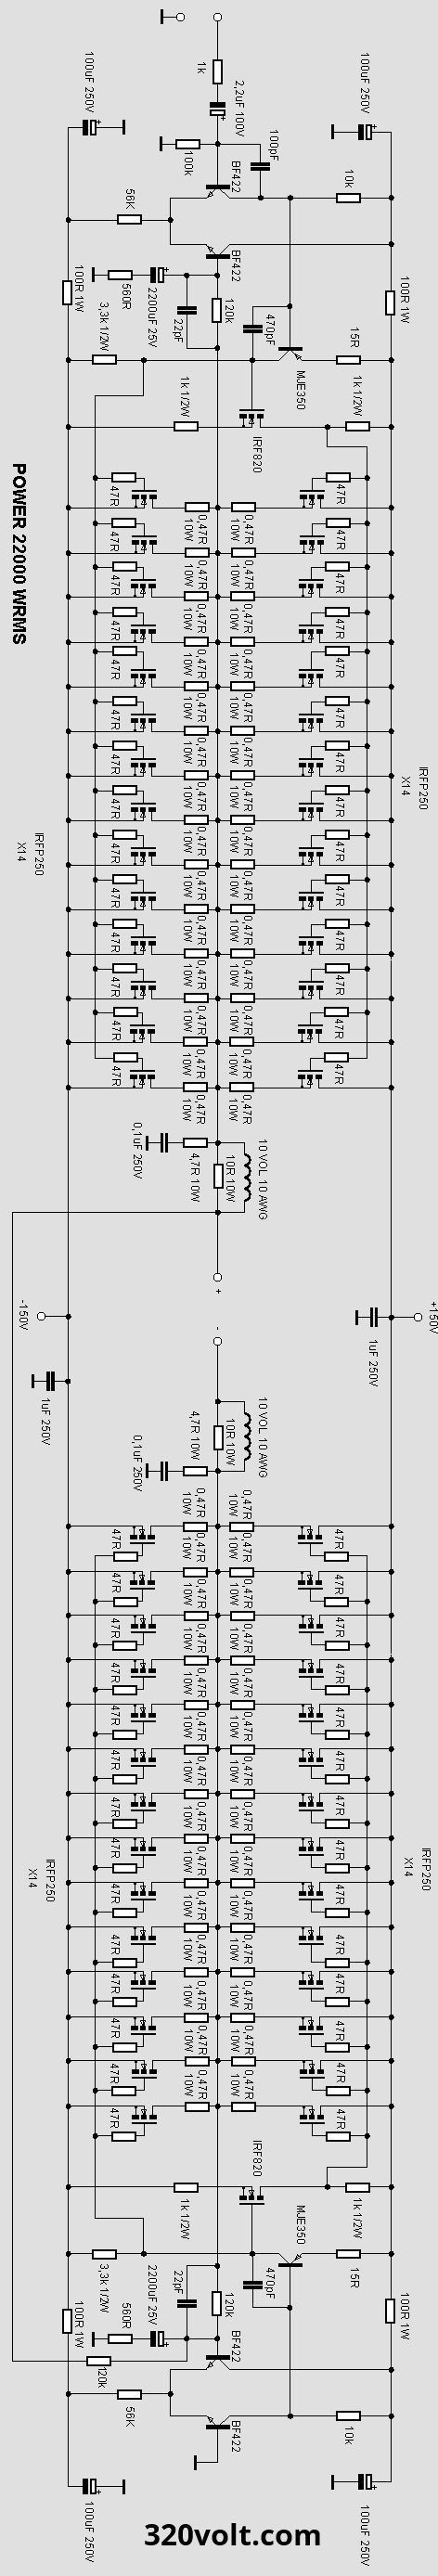 2200w Amplifier Circuit Mosfet 250 Diagram Images Watt Audio Power Schematic High Transistor Circuits